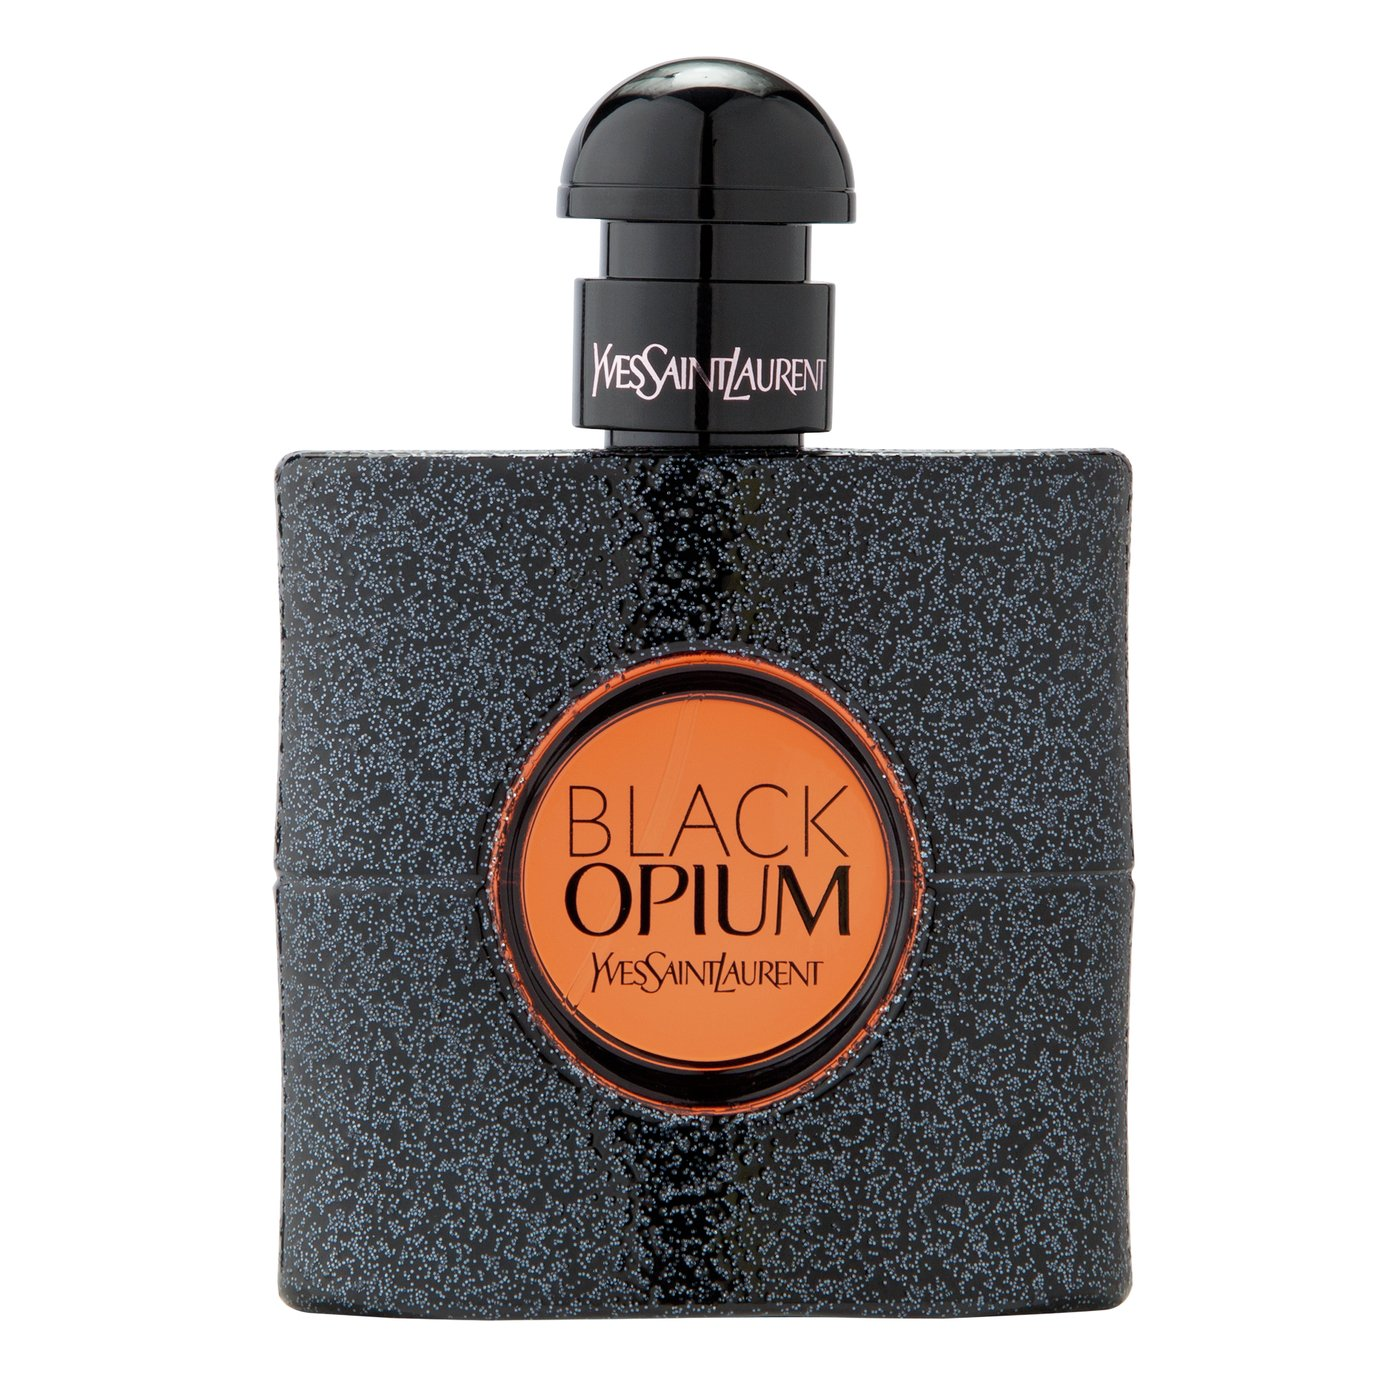 Yves Saint Laurent Black Opium Eau de Parfum for Women- 50ml